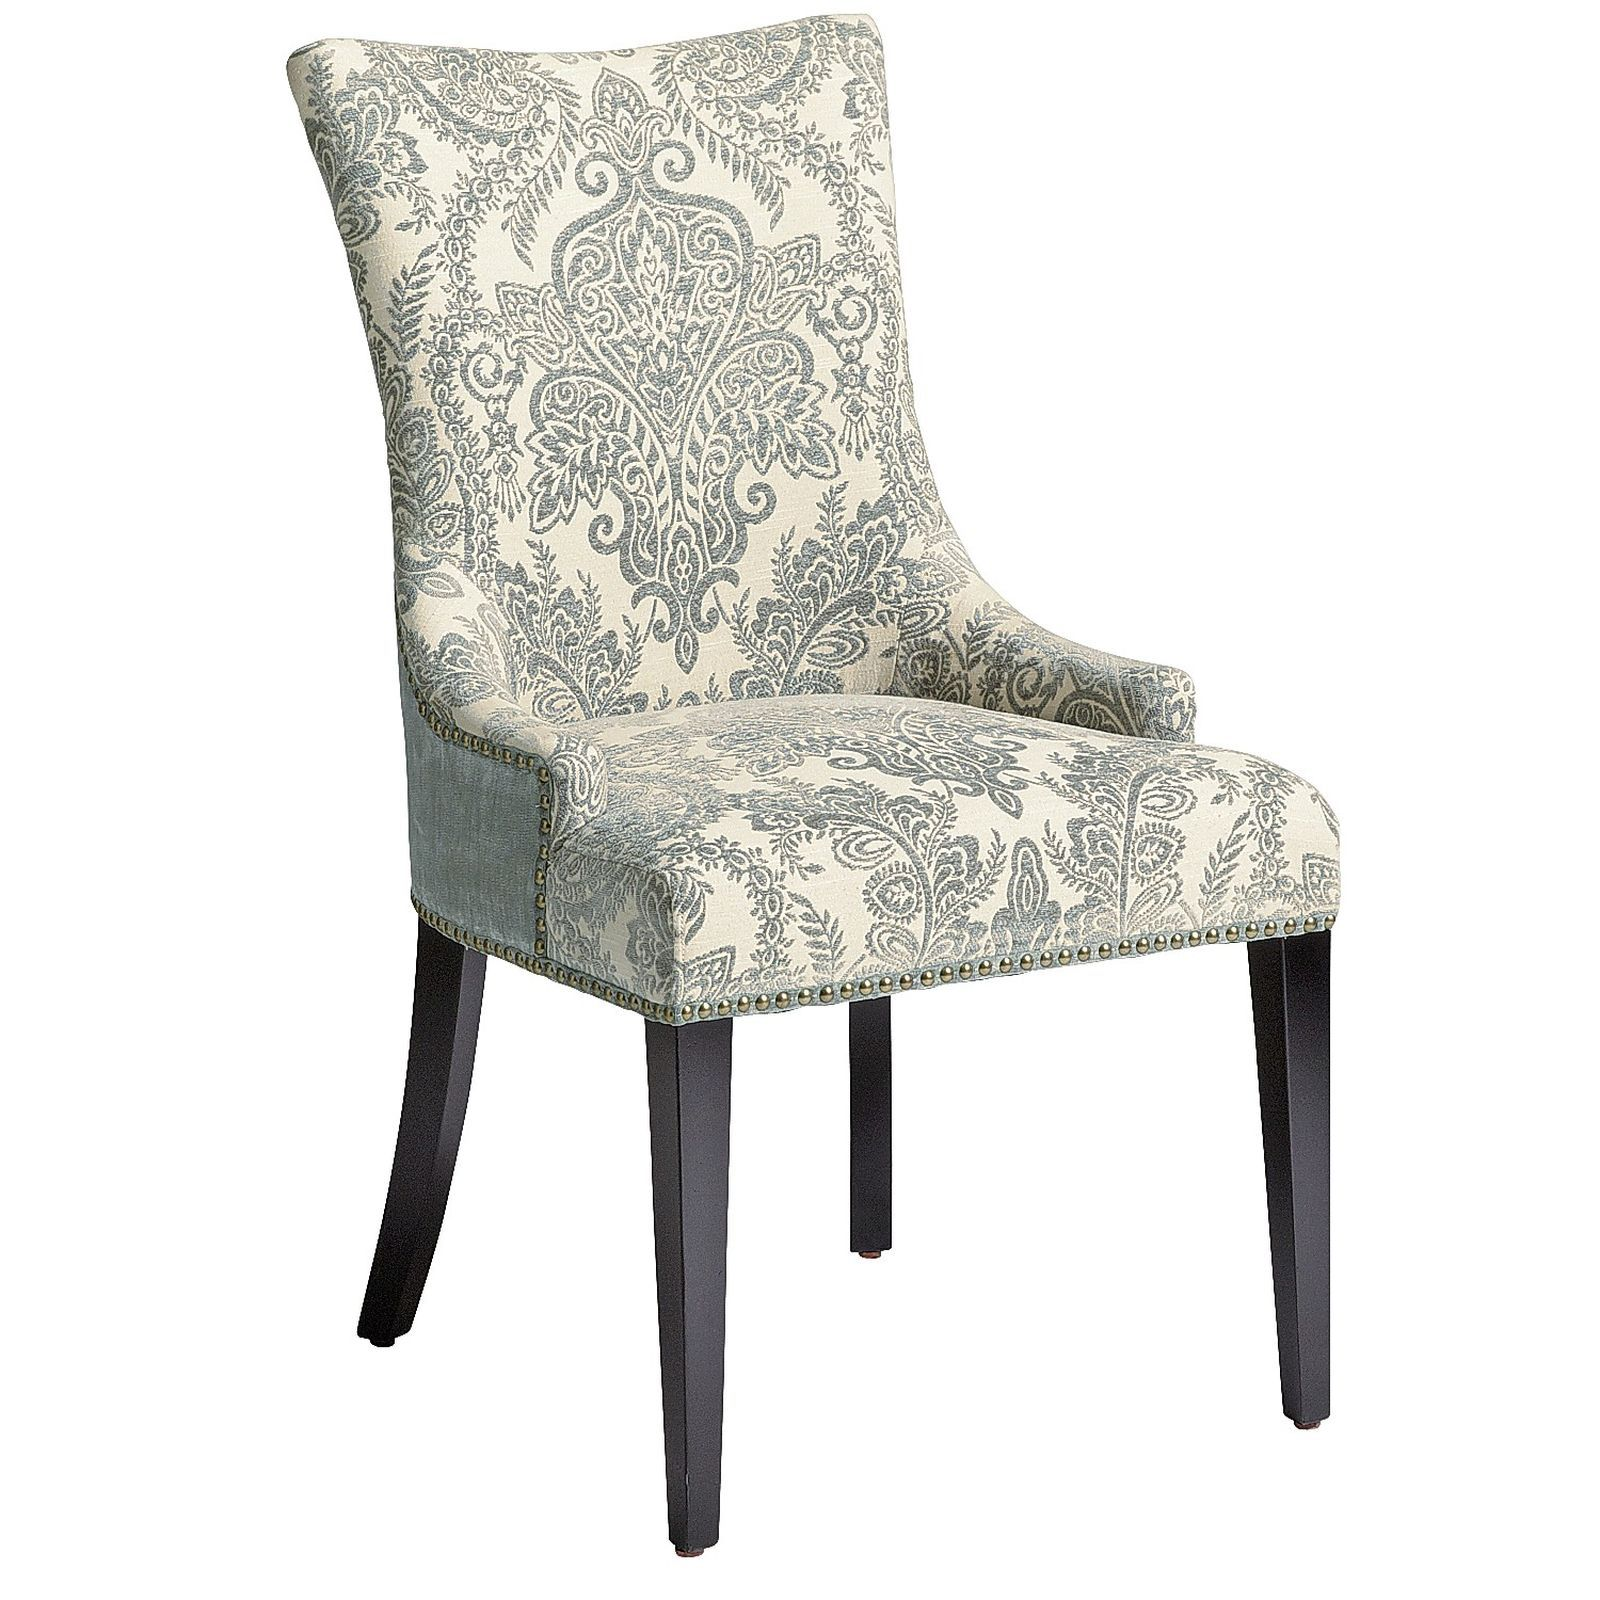 Pier 1 Imports Adelle Smoke Blue Dining Chair  Nailhead Trim Inspiration Dining Room Chairs Pier One Review